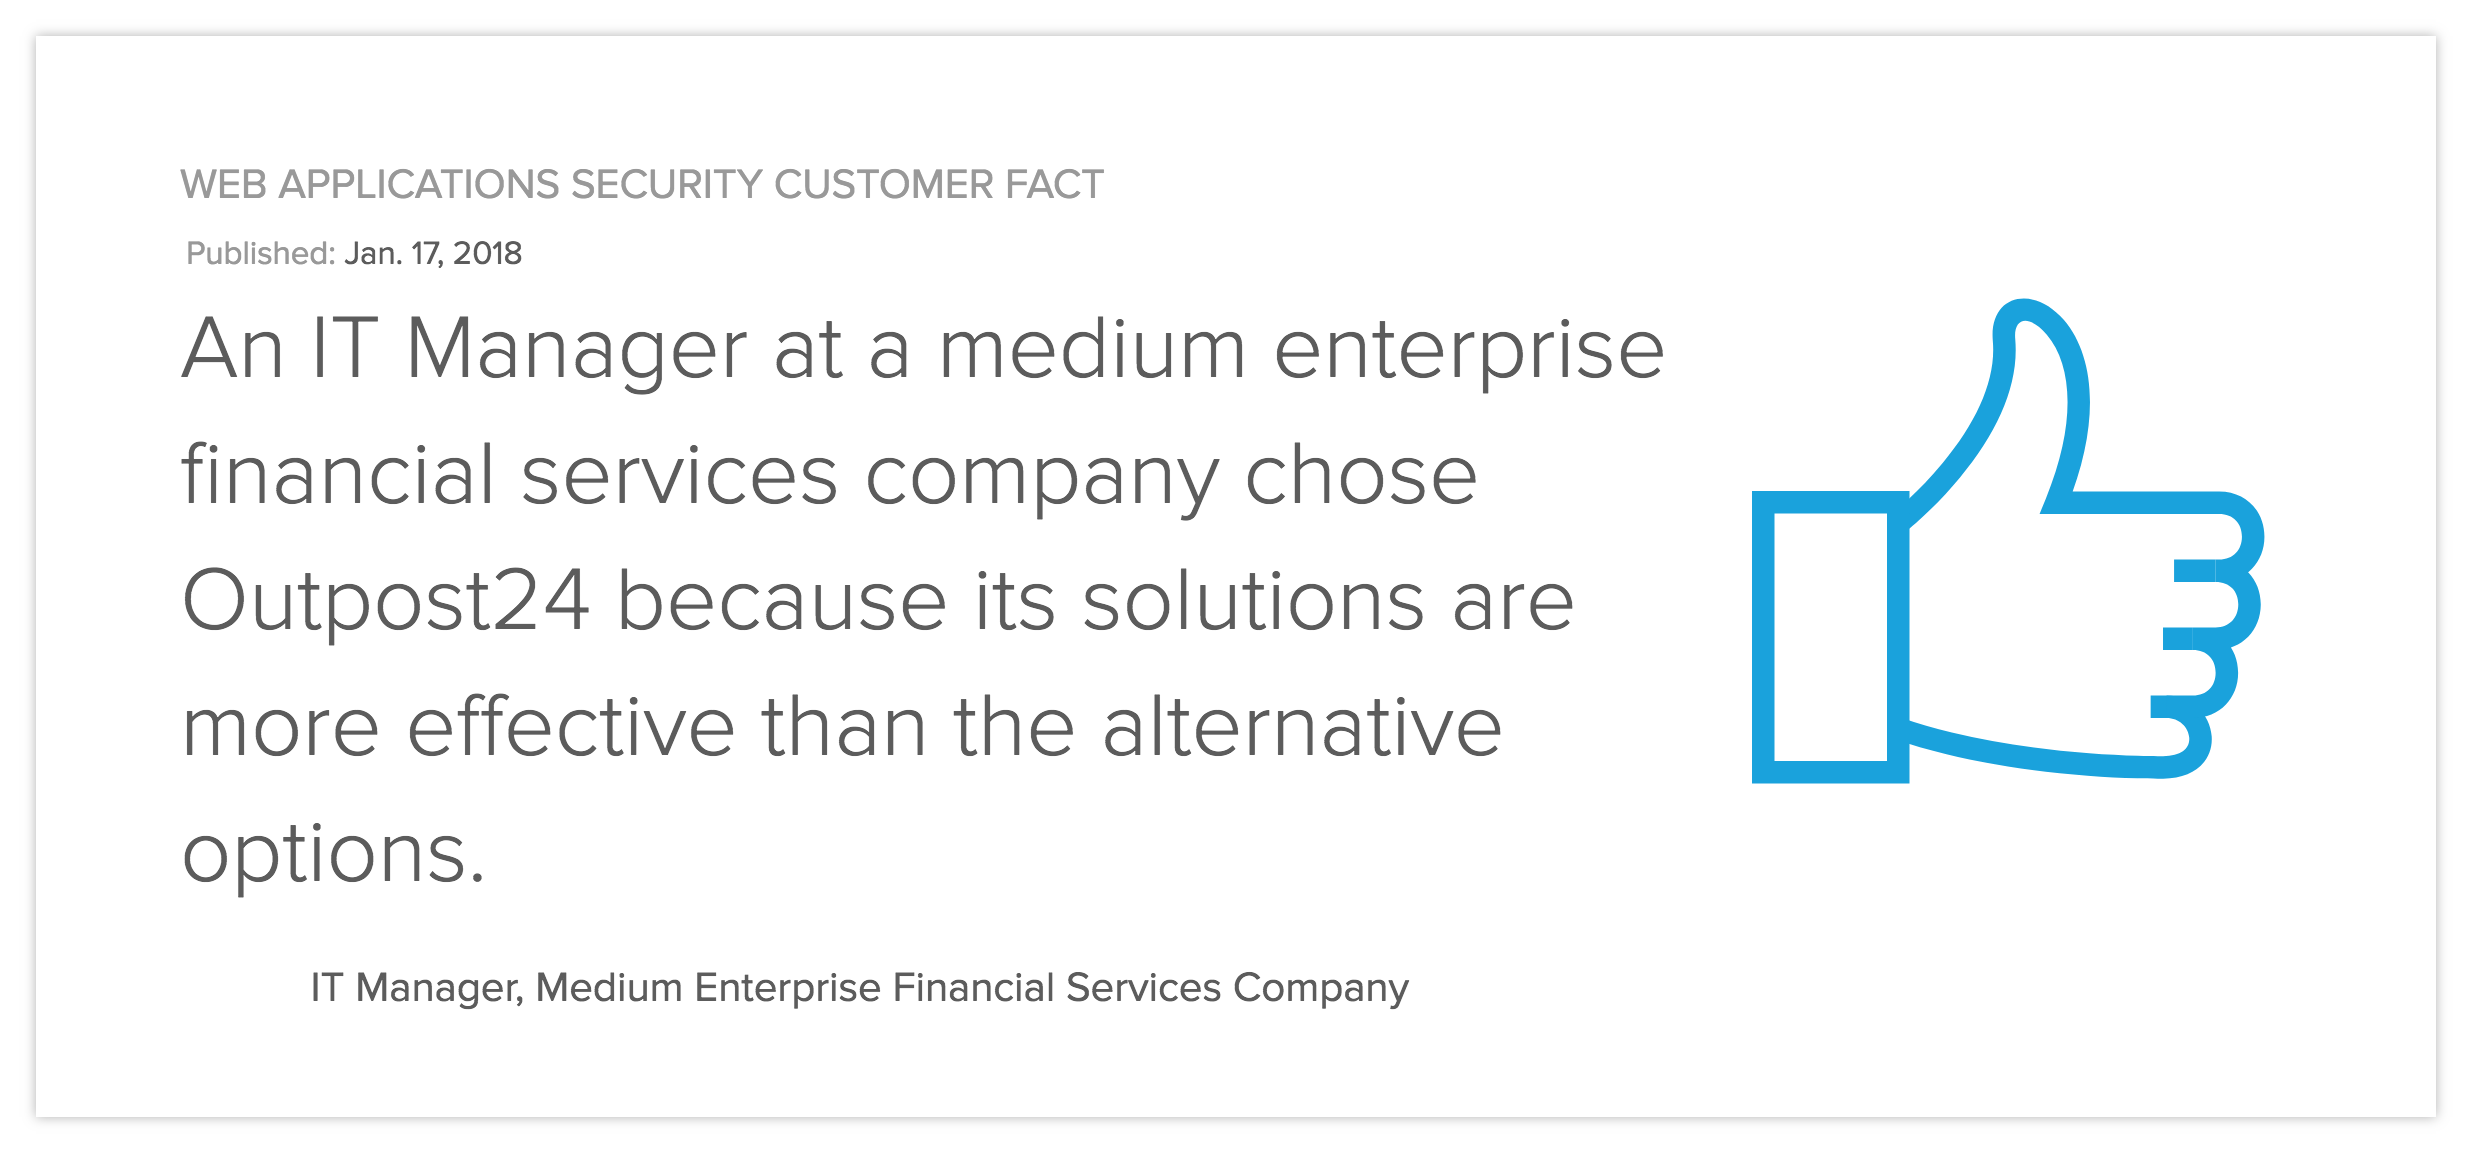 An IT Manager at a medium enterprise financial services company chose Outpost24 because its solutions are more effective than the alternative options